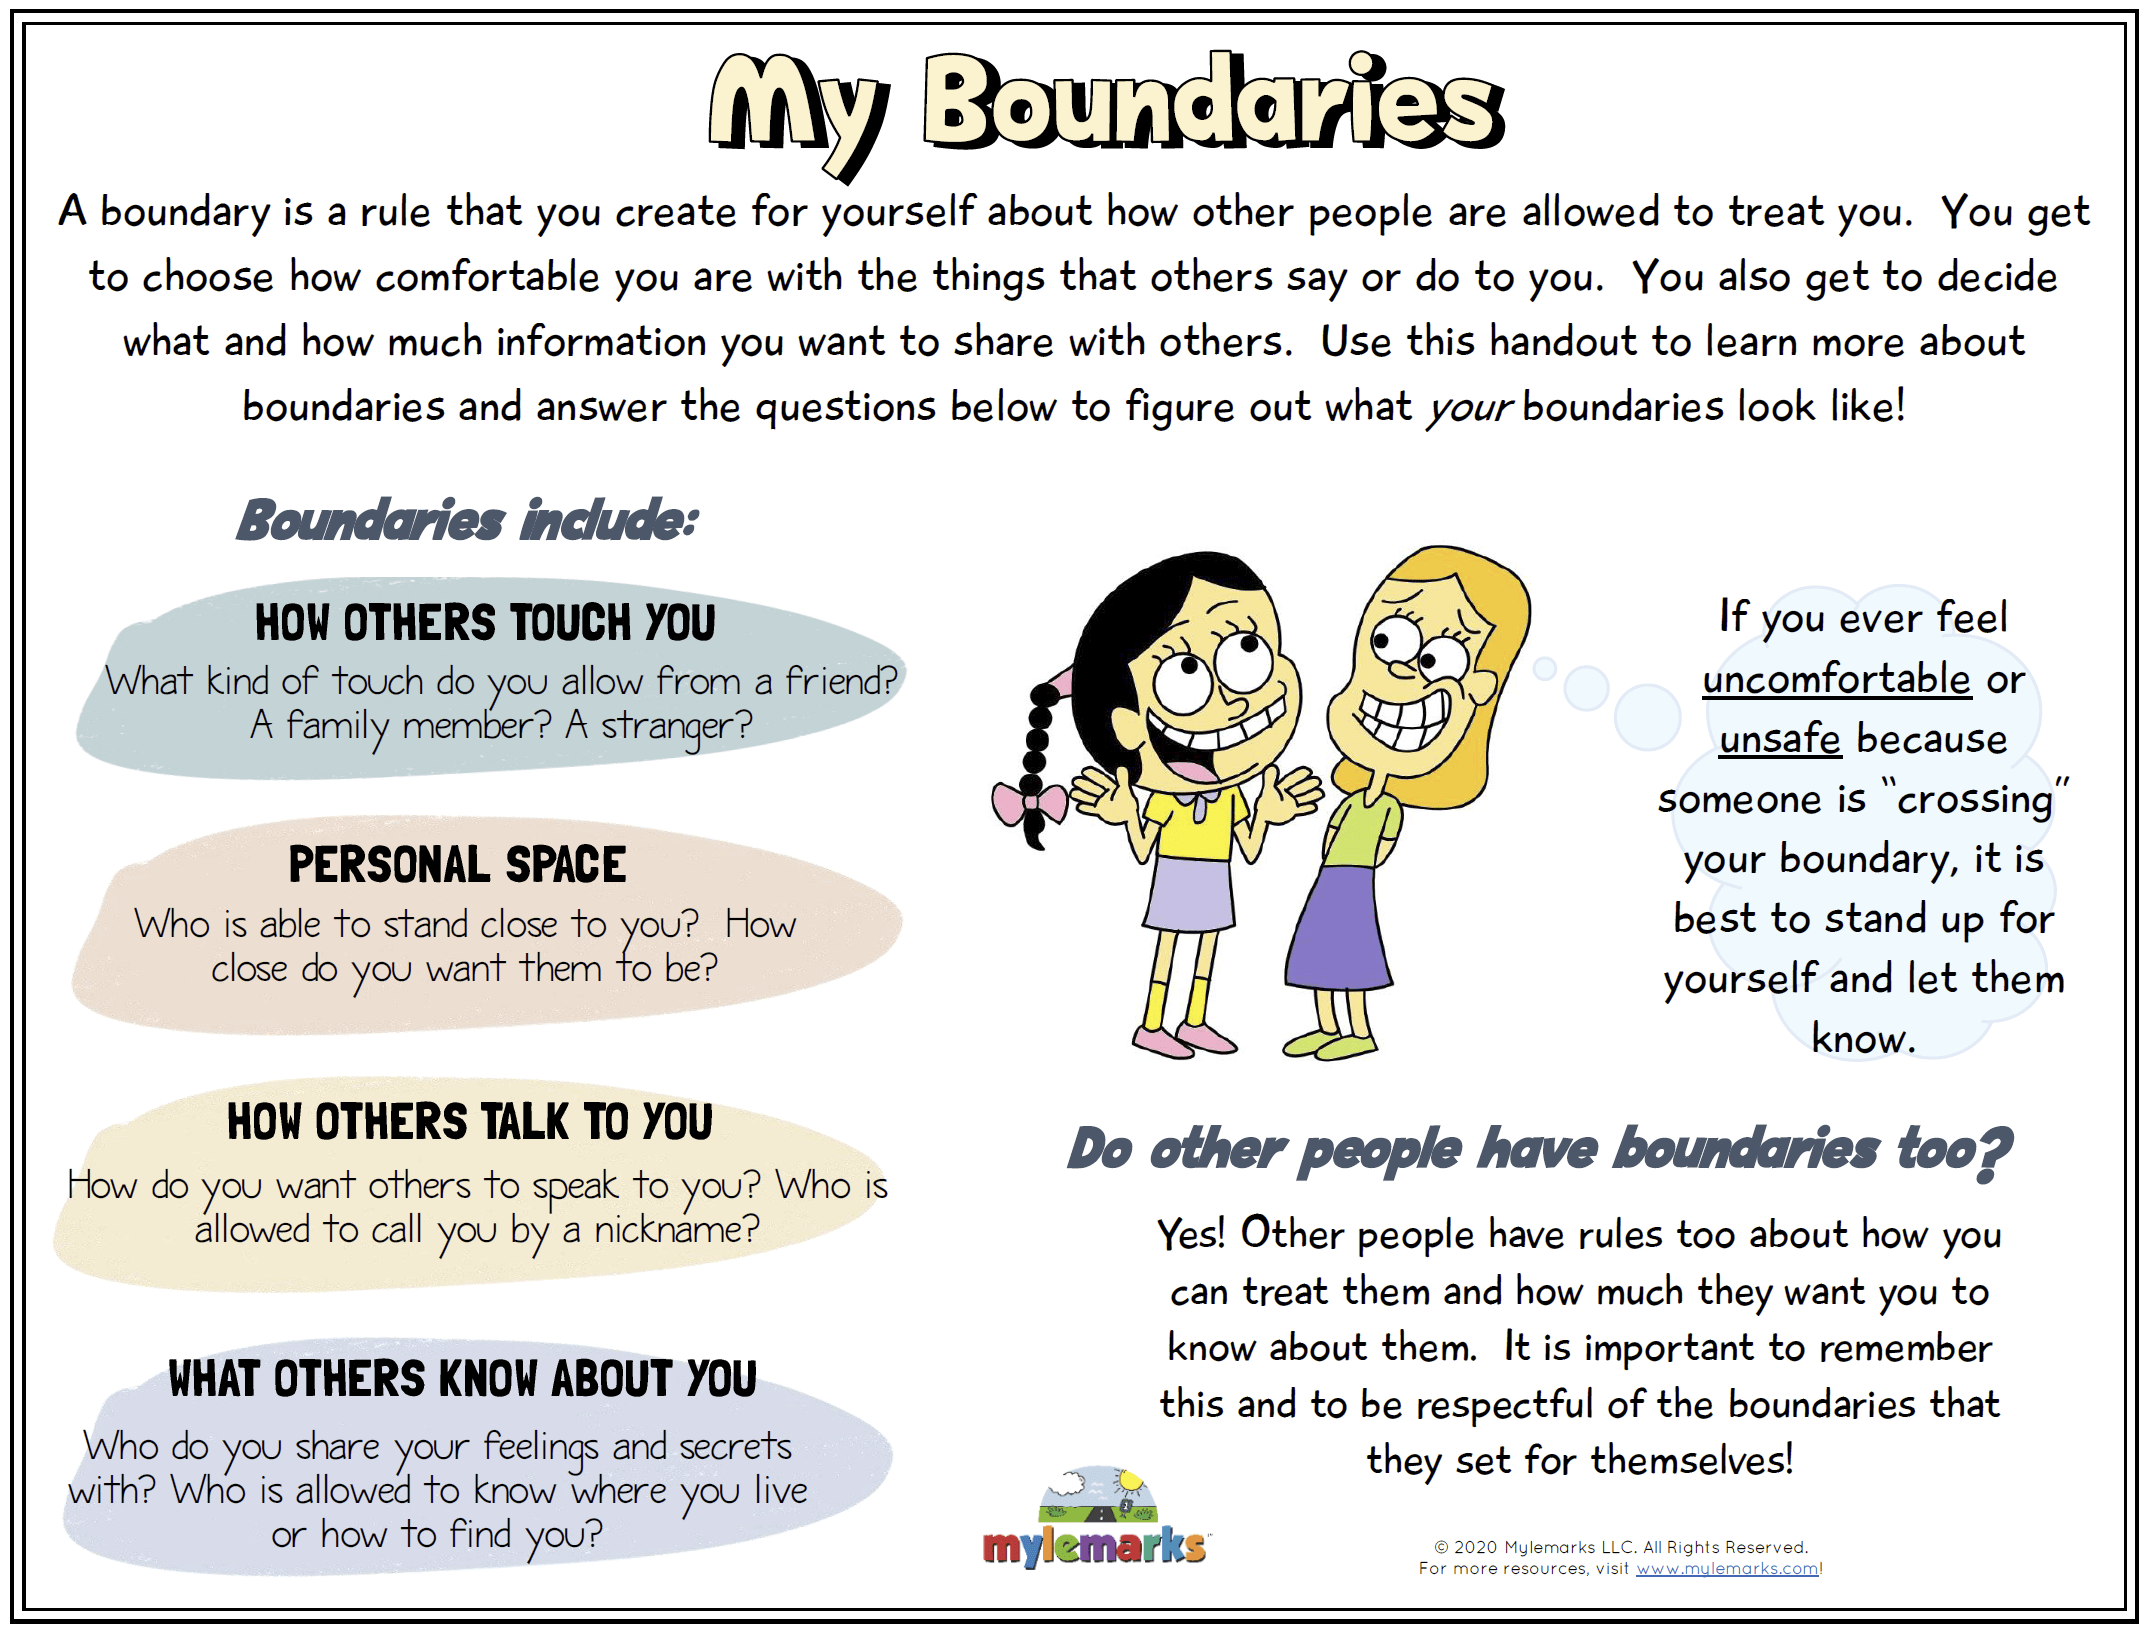 My Boundaries